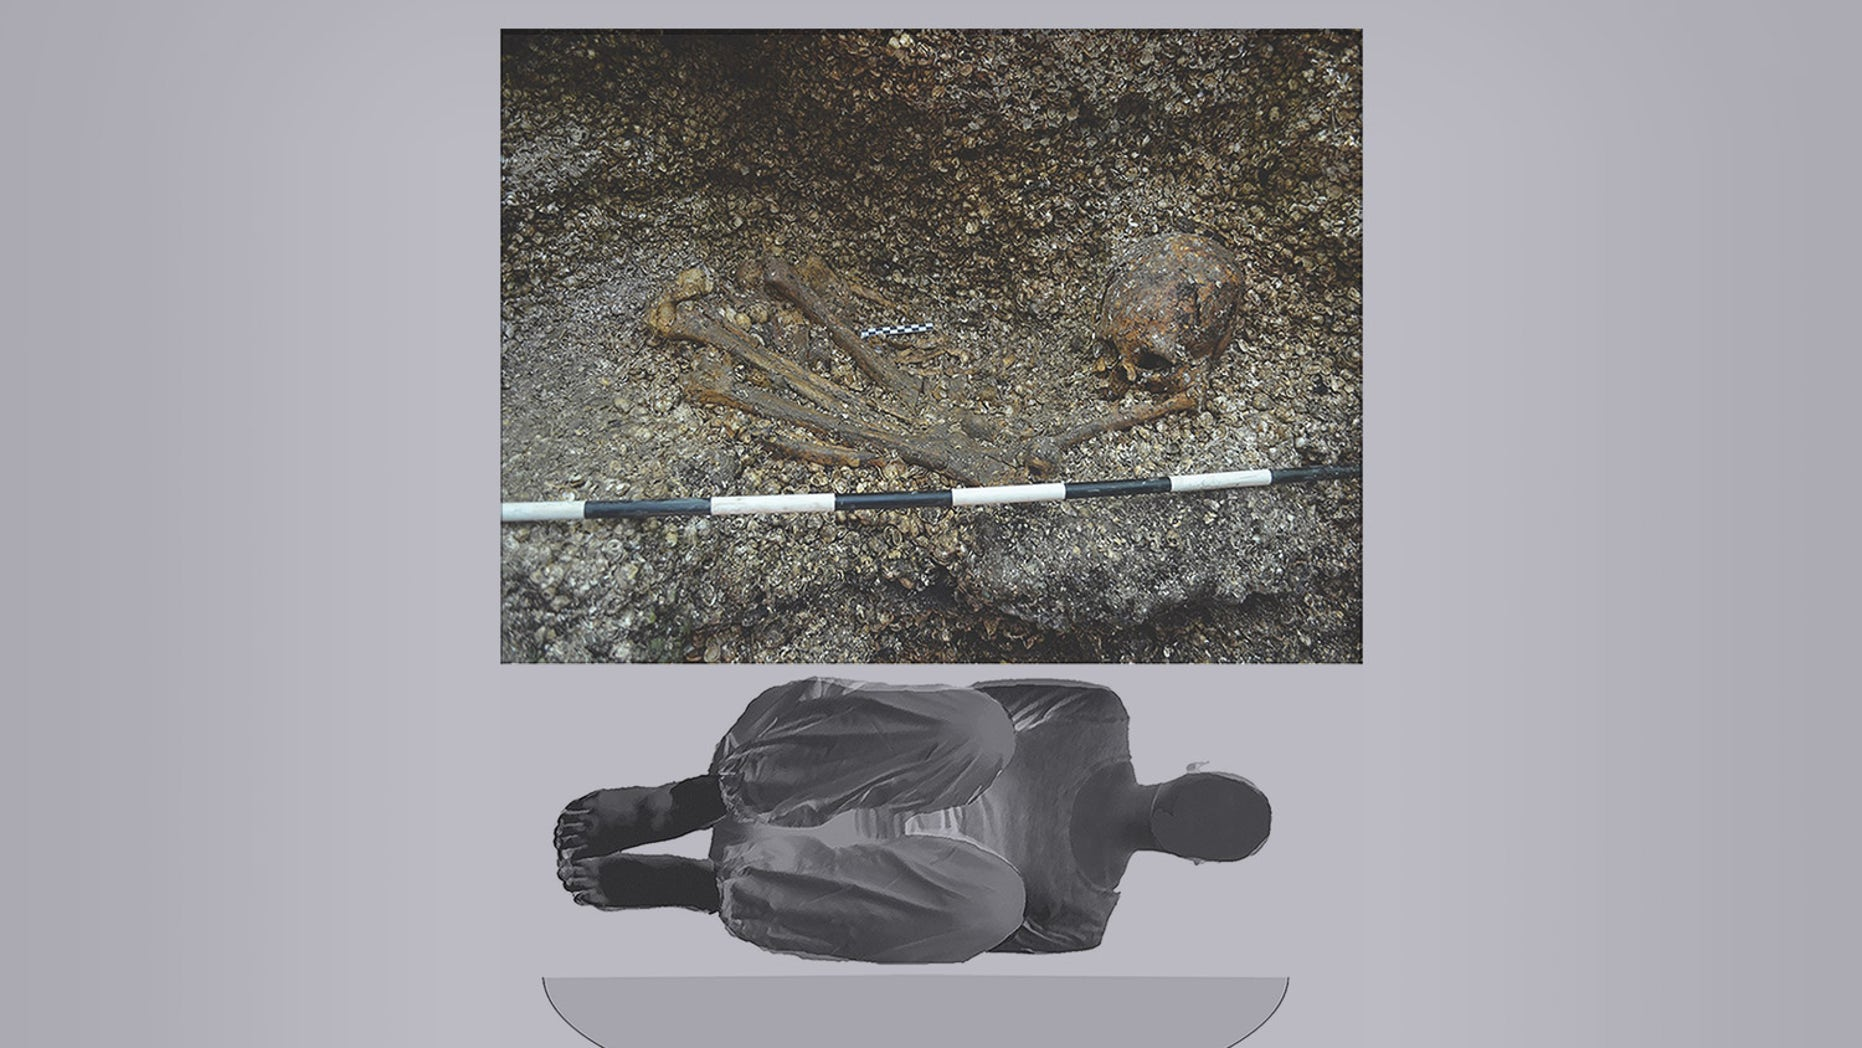 The excavated funeral (top) of a ancient woman, subsequent to an painting (bottom) of how she was buried in a shoal oval array about 5,900 years ago.